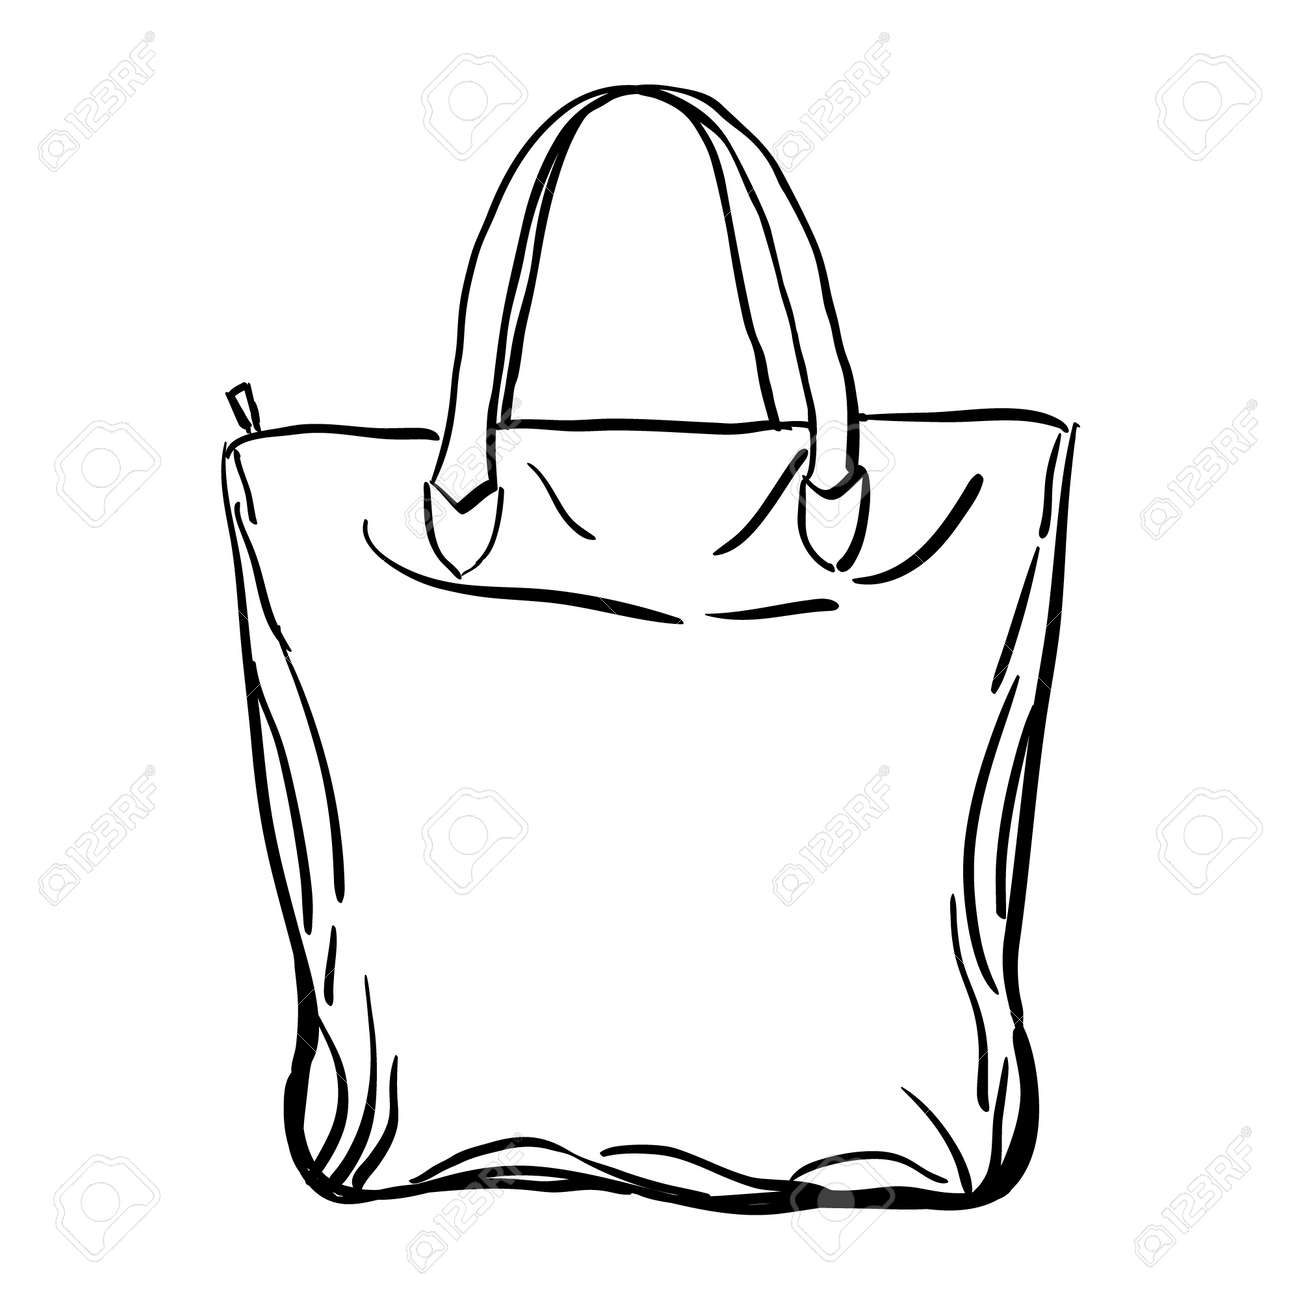 Beach tote bag sketch isolated on white background. Vector illustration. - 57642867